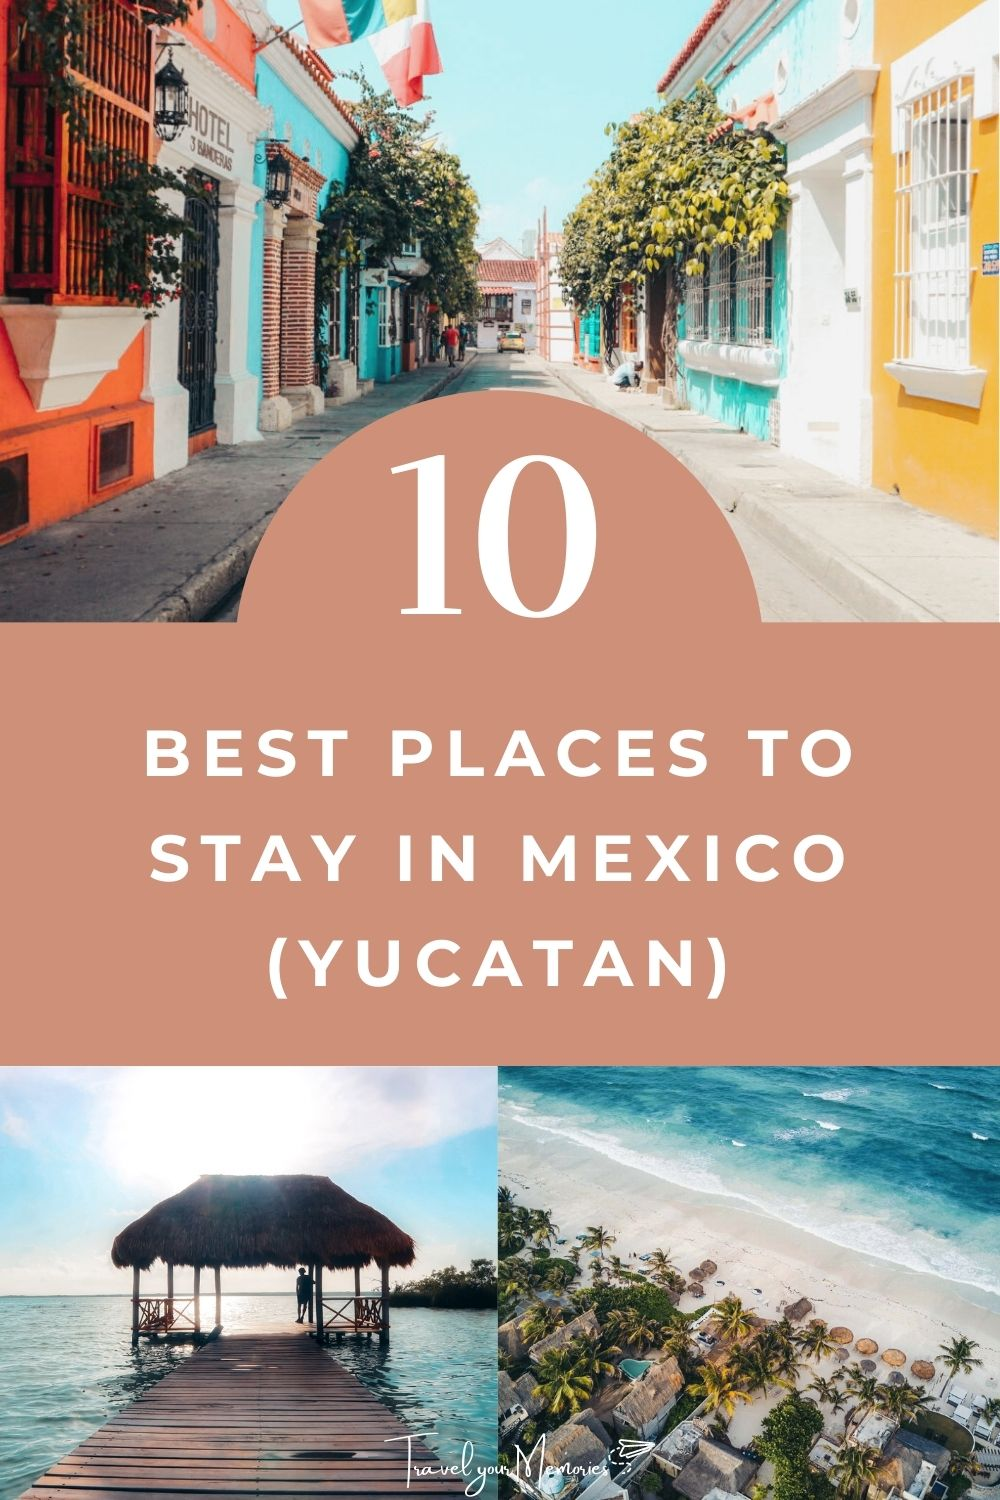 Top 10 best places to stay in Mexico